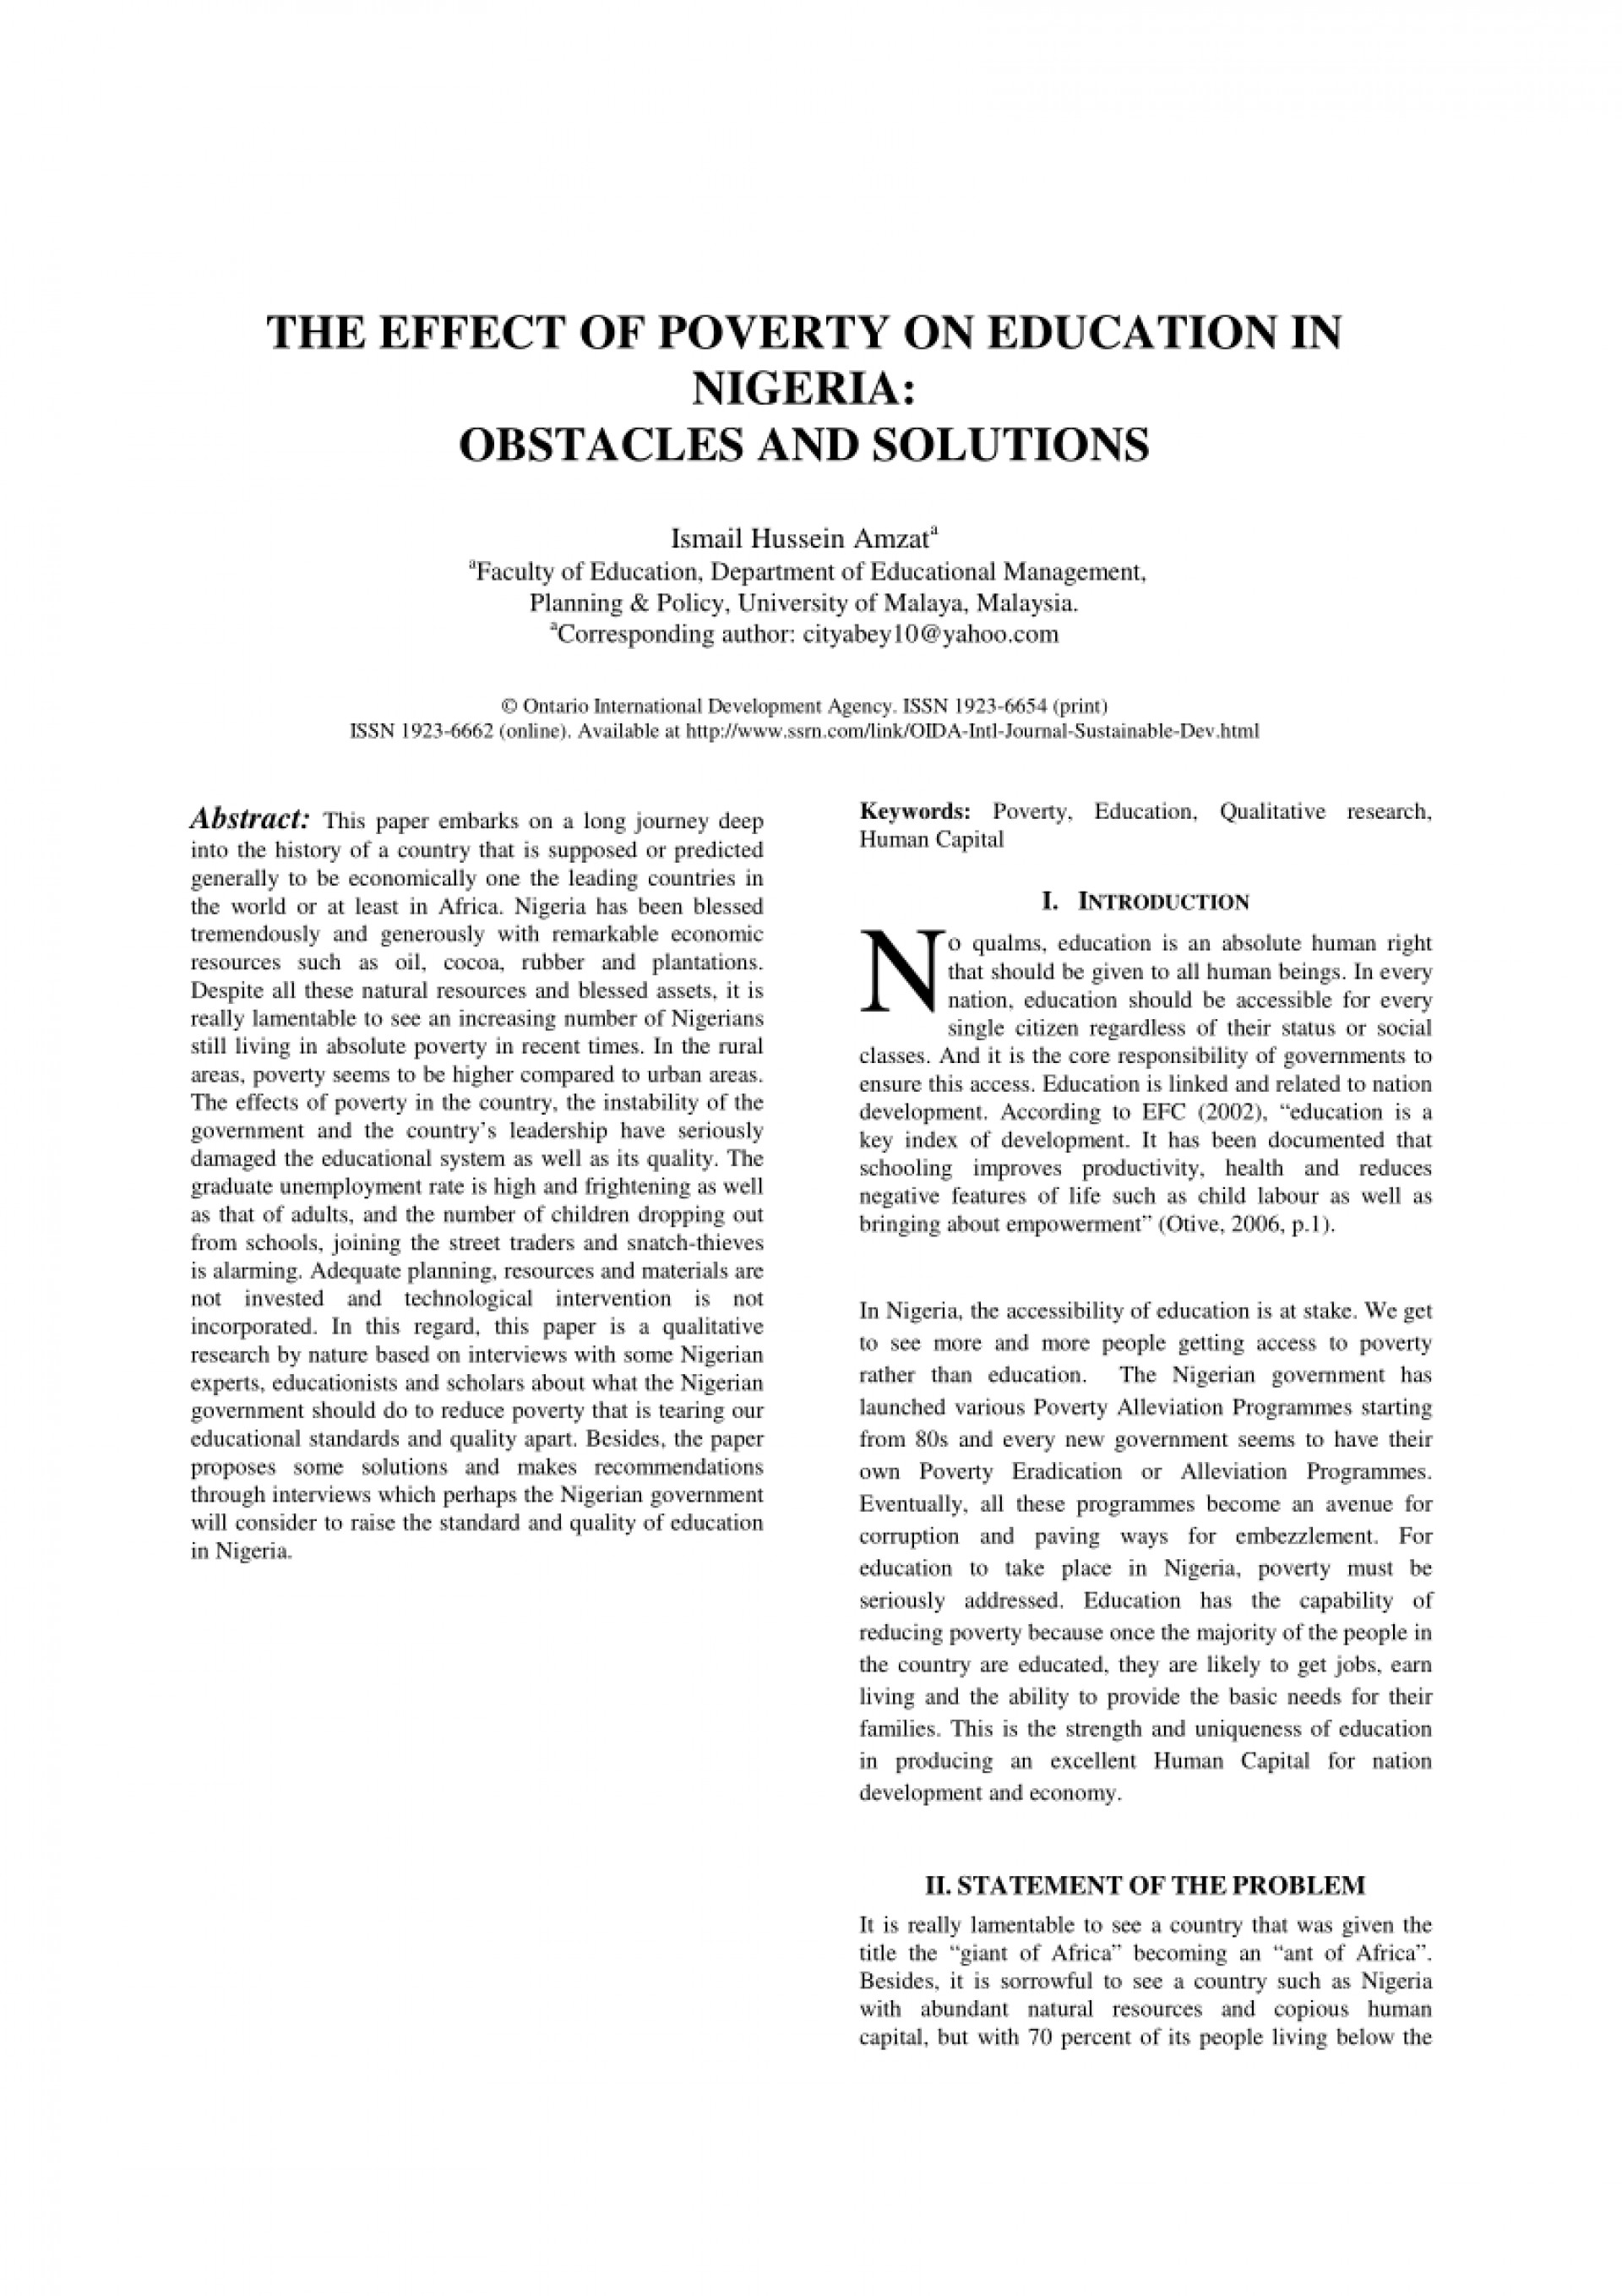 007 Essay Example Pdf The Effect Of Poverty On Education In Nigeria Obstacles And Is Best Weapon Against Largepr English Wondrous Problem India Solution 1920